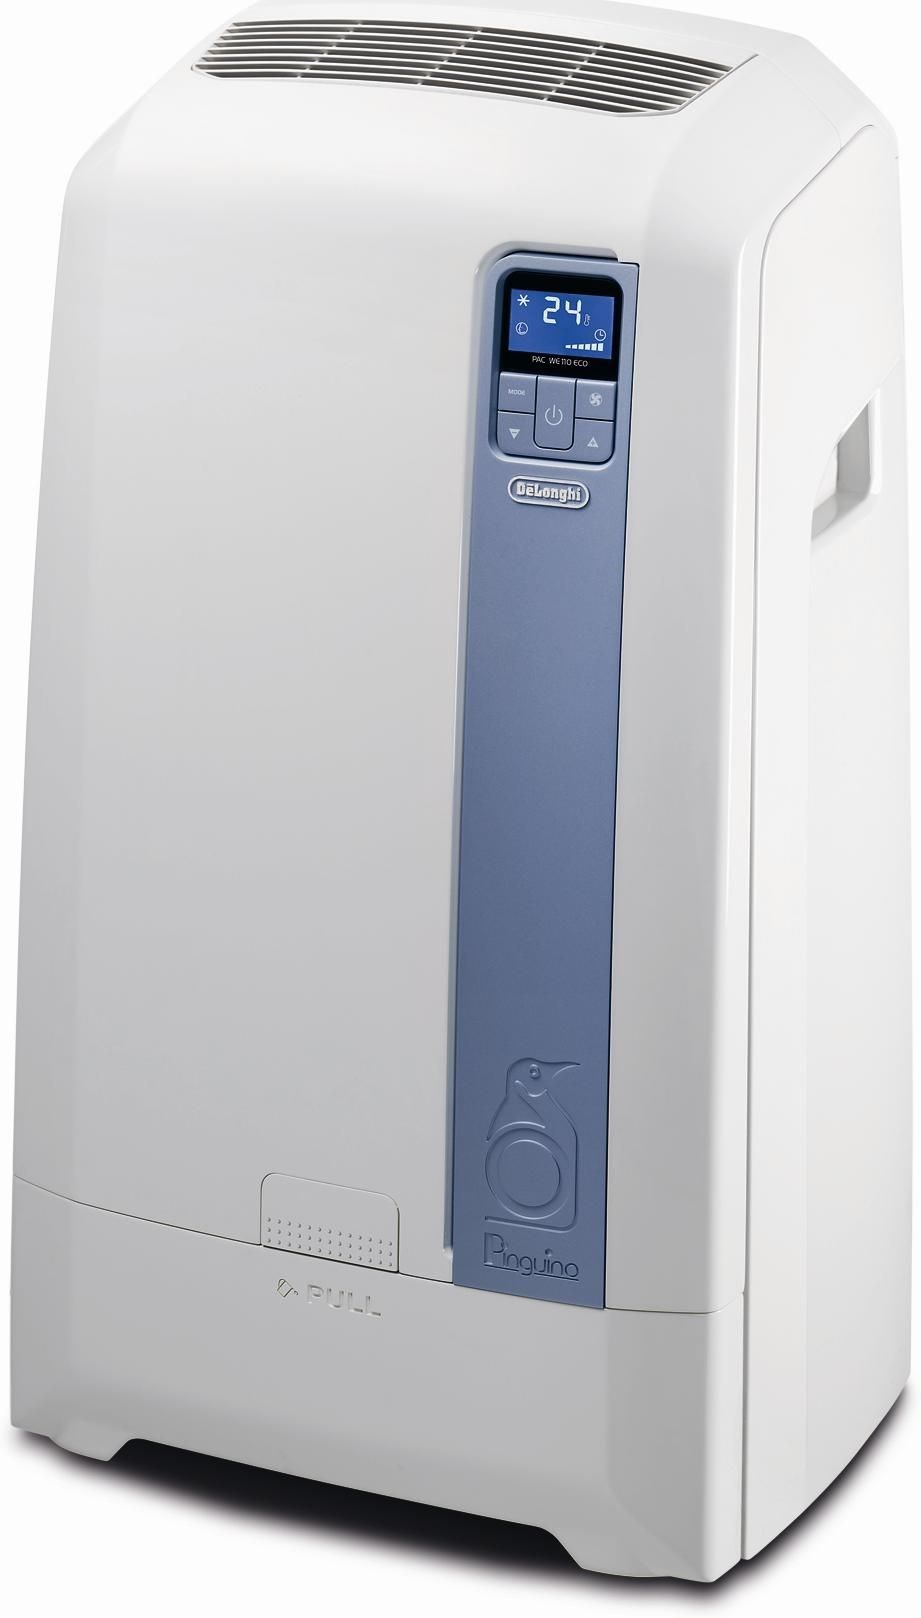 DeLonghi PAC WE112ECO Pinguino Wasser-Luft System (EEK: A+)